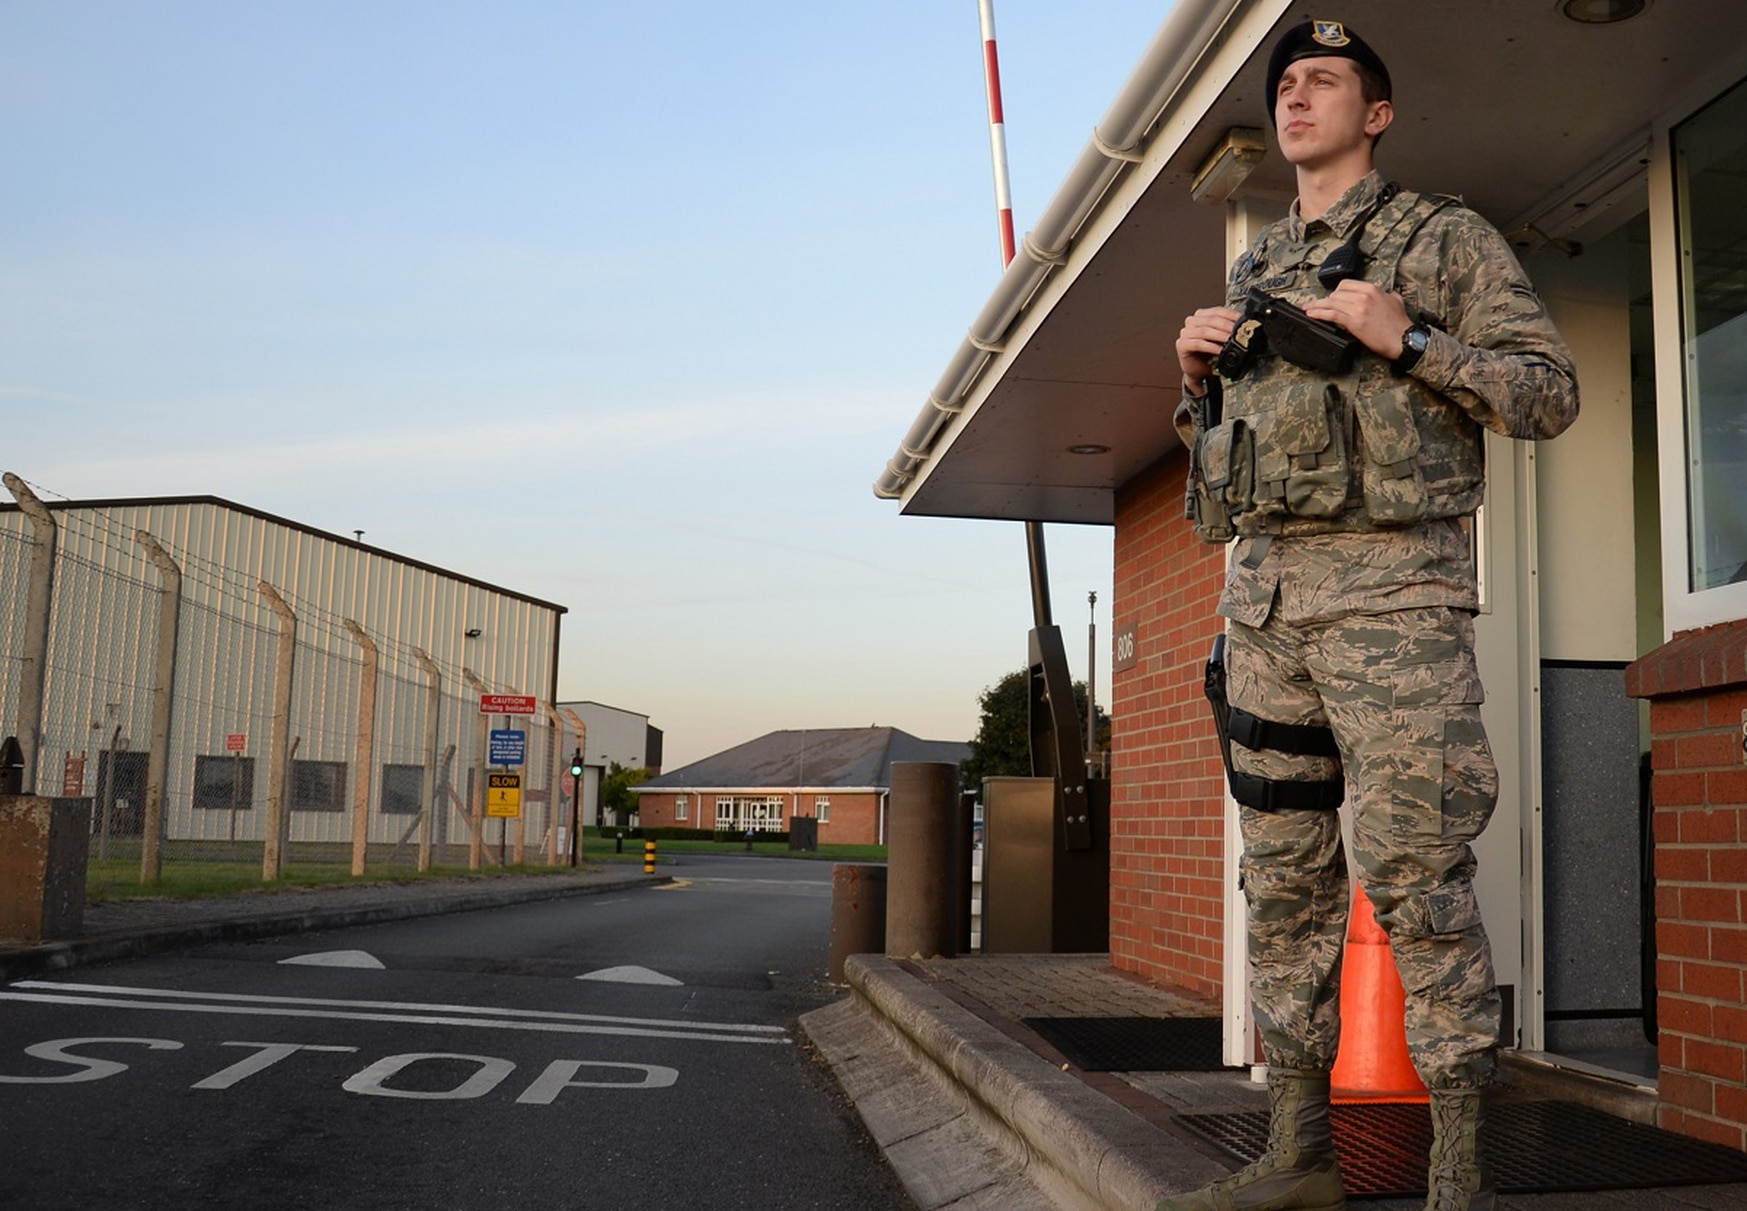 An airman with the 100th Security Forces Squadron keeps watch at the gate on RAF Mildenhall, England. Changes to base security have been made since an intruder managed to get on the Mildenhall flightline. (Gina Randall /Air Force)